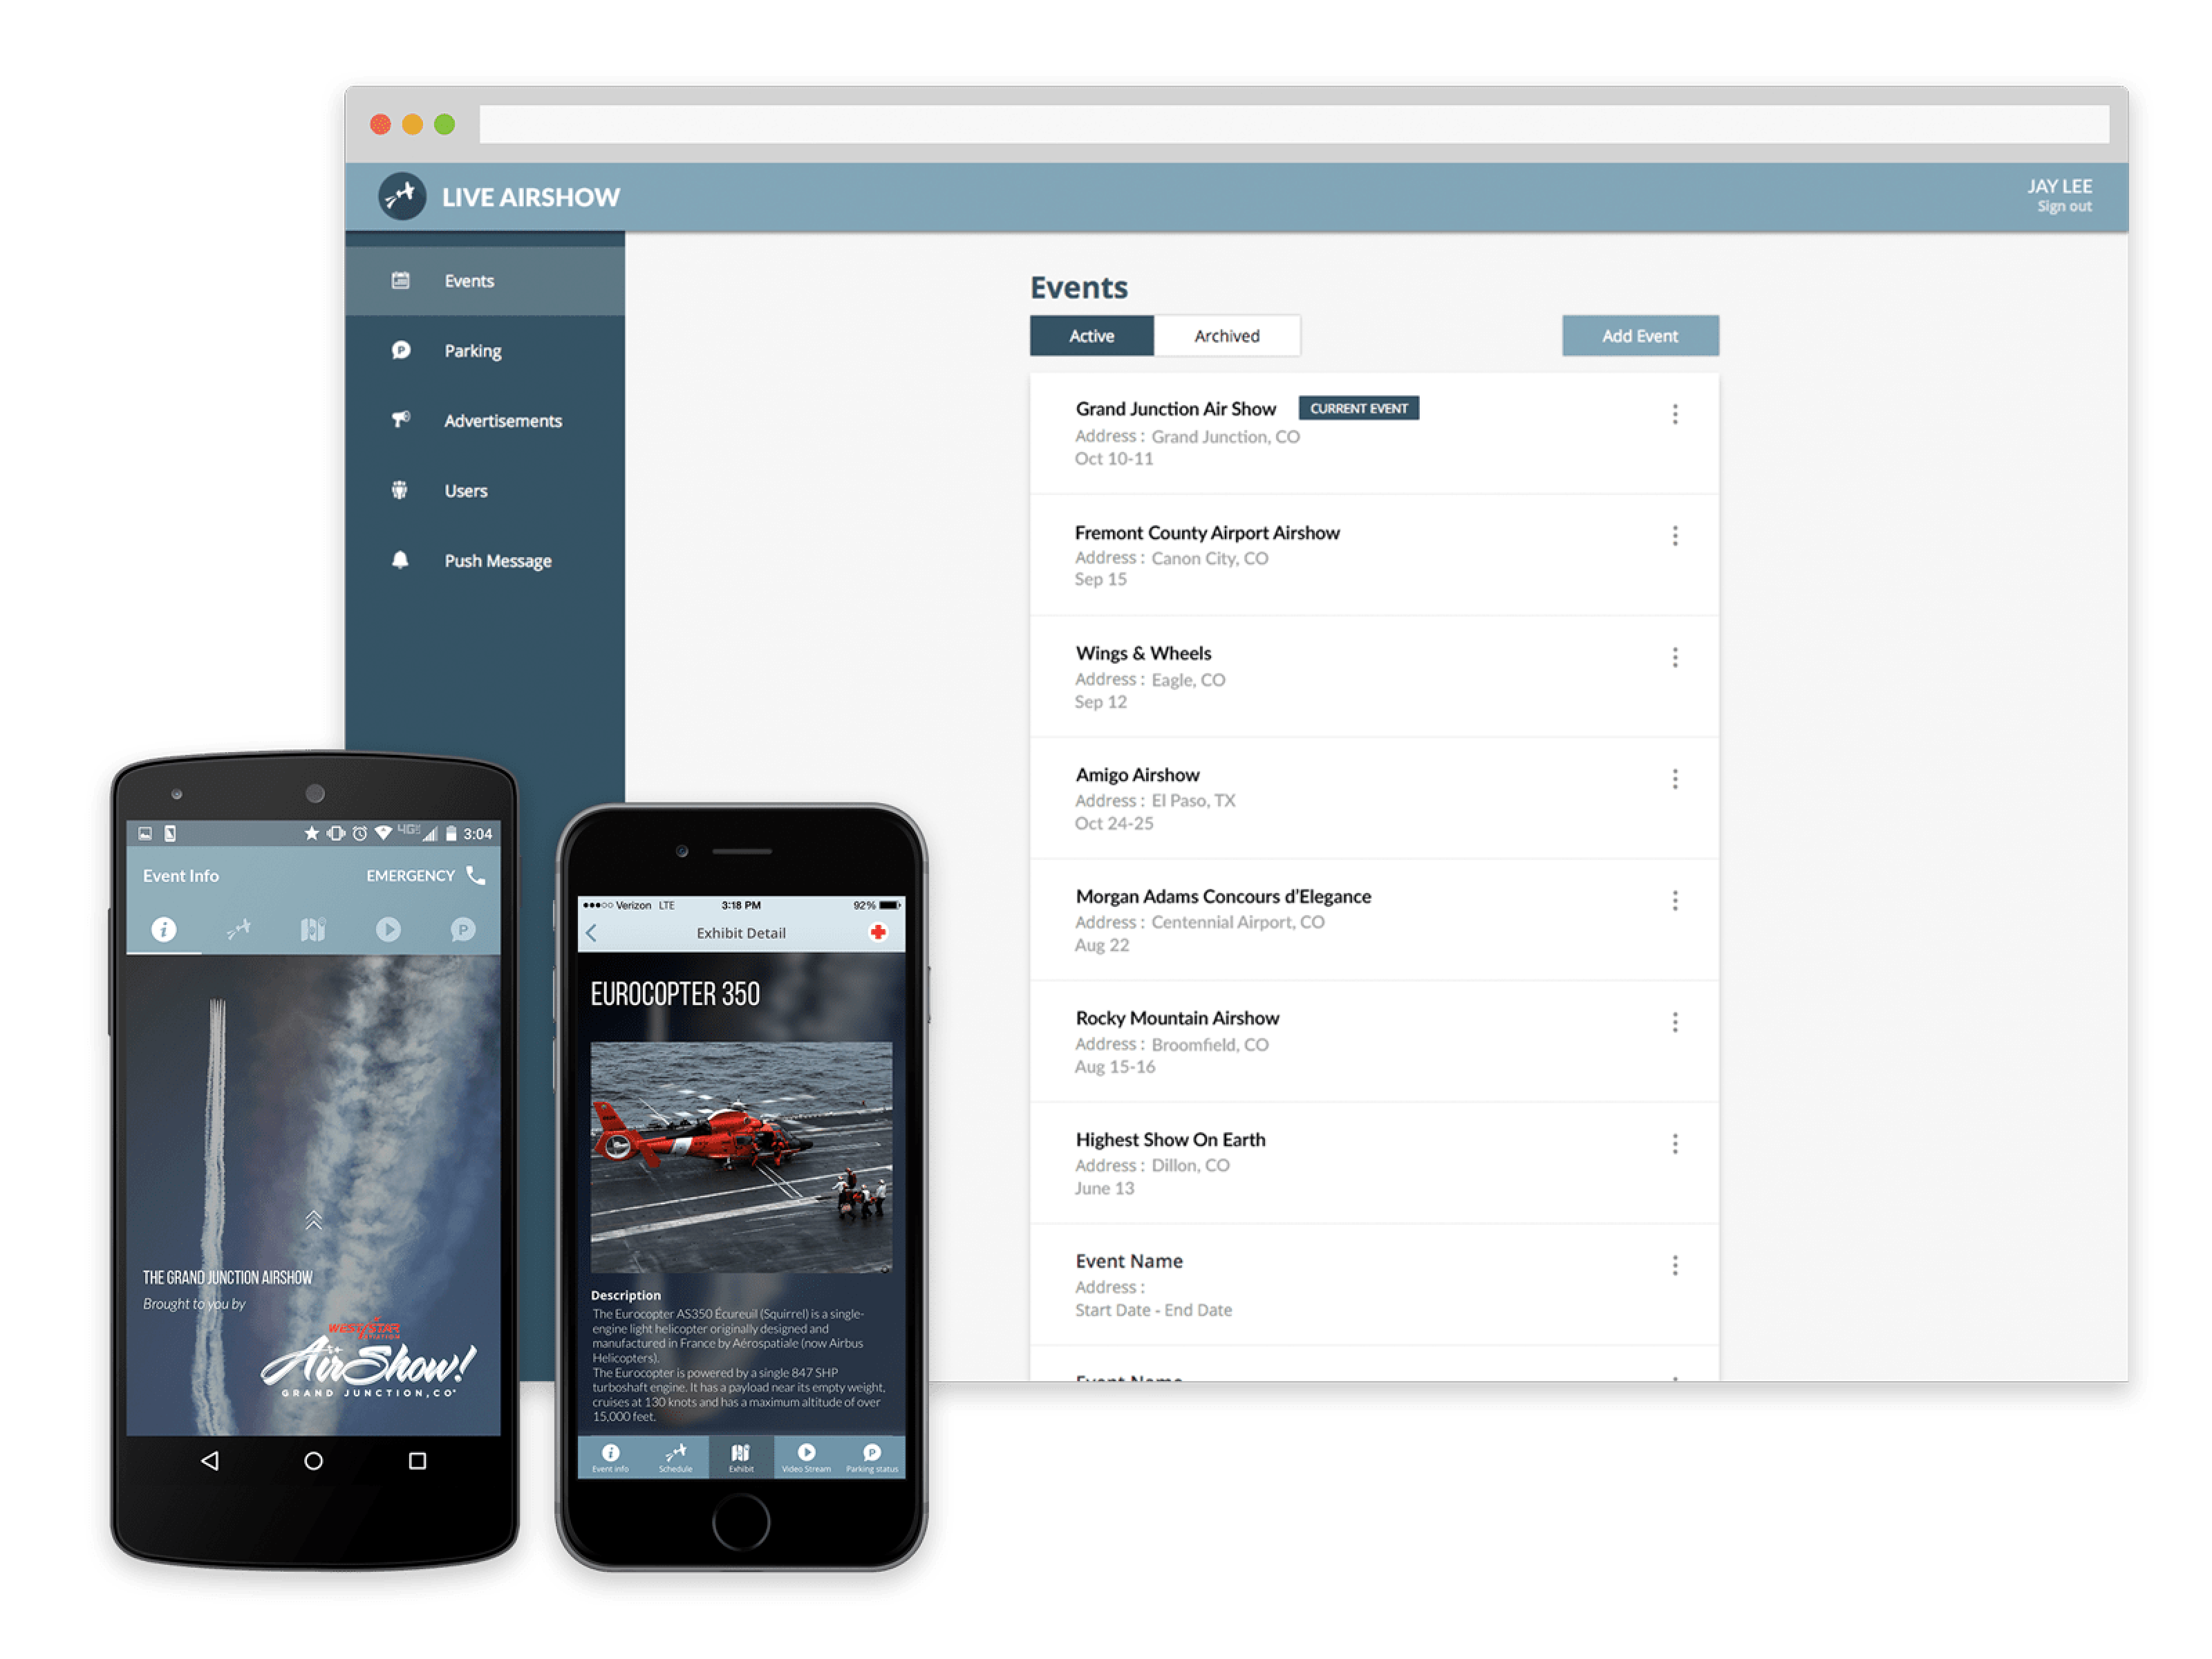 tenfive-productions-web-and-mobile-app